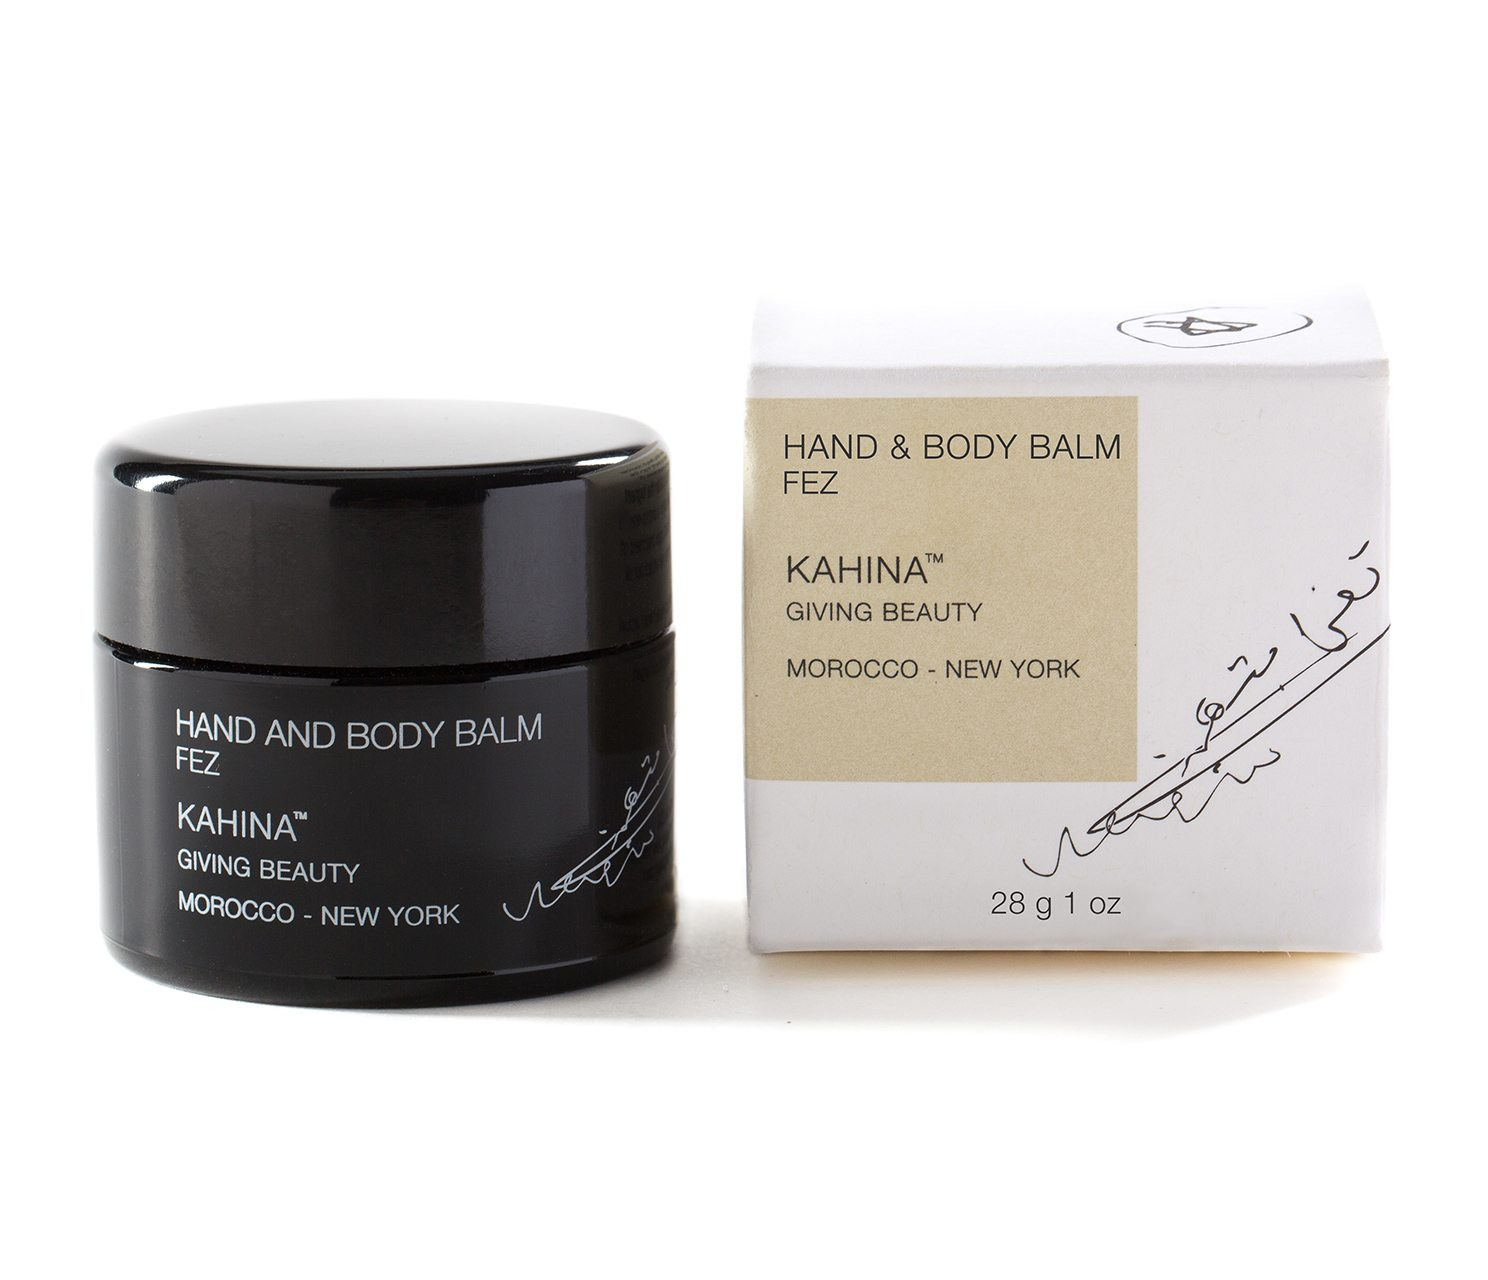 Kahina Giving Beauty Hand and Body Balm